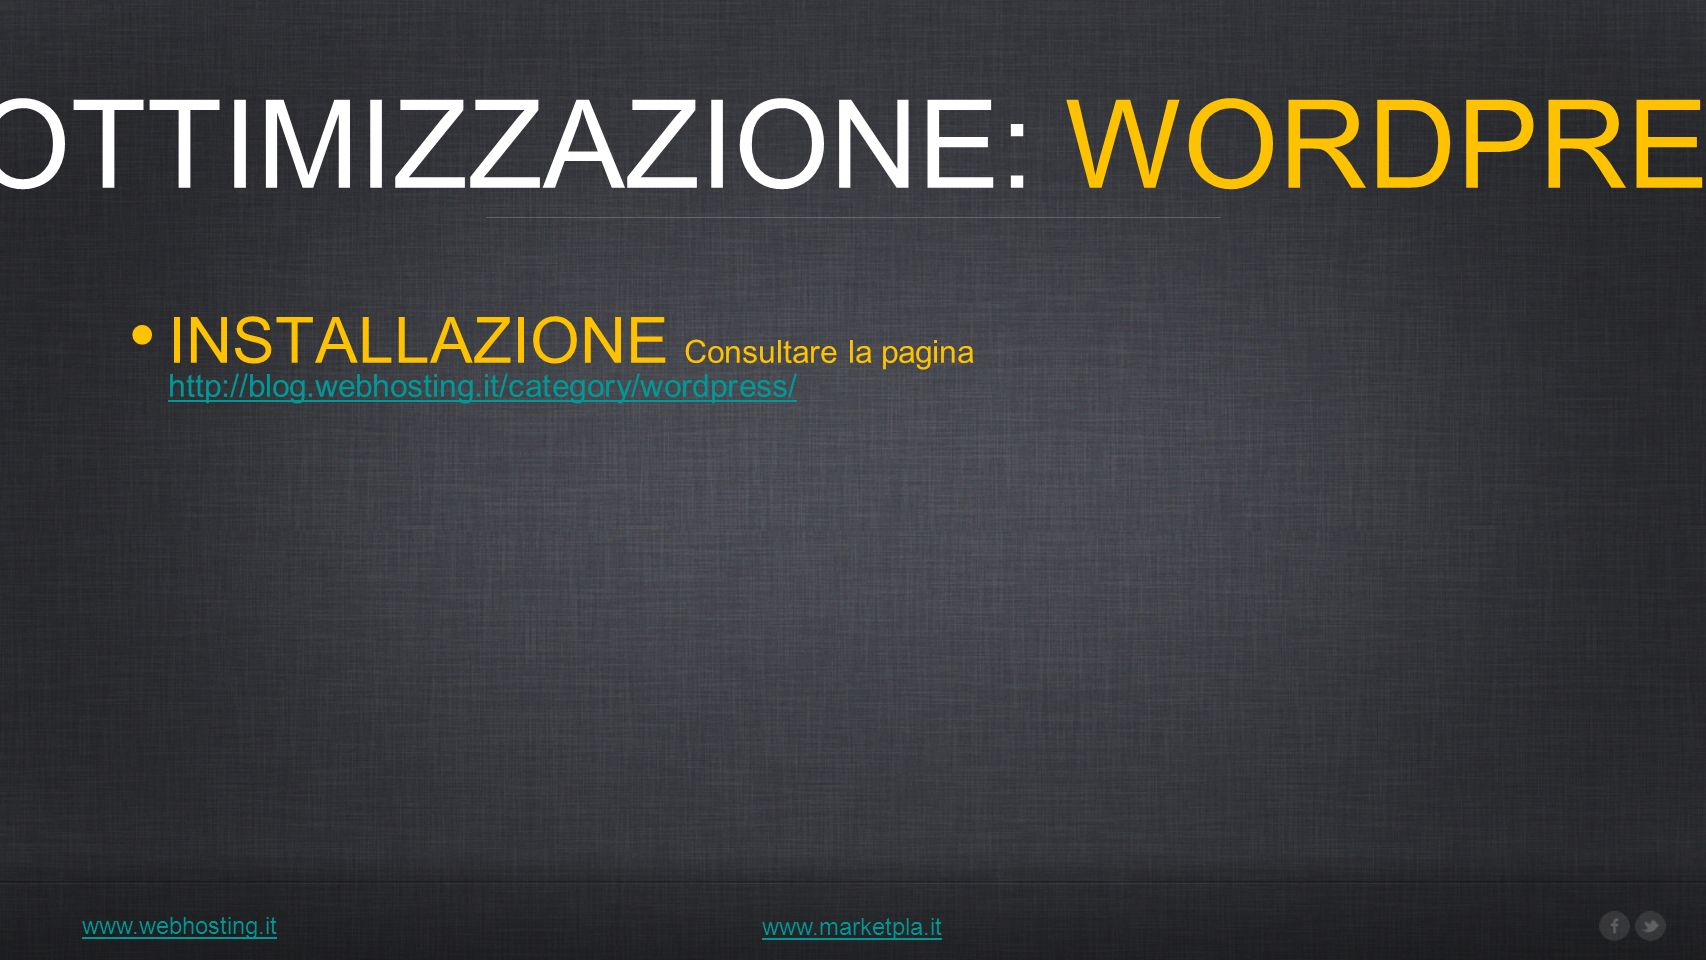 www.webhosting.it 1) OTTIMIZZAZIONE: WORDPRESS www.marketpla.it INSTALLAZIONE Consultare la pagina http://blog.webhosting.it/category/wordpress/ http://blog.webhosting.it/category/wordpress/